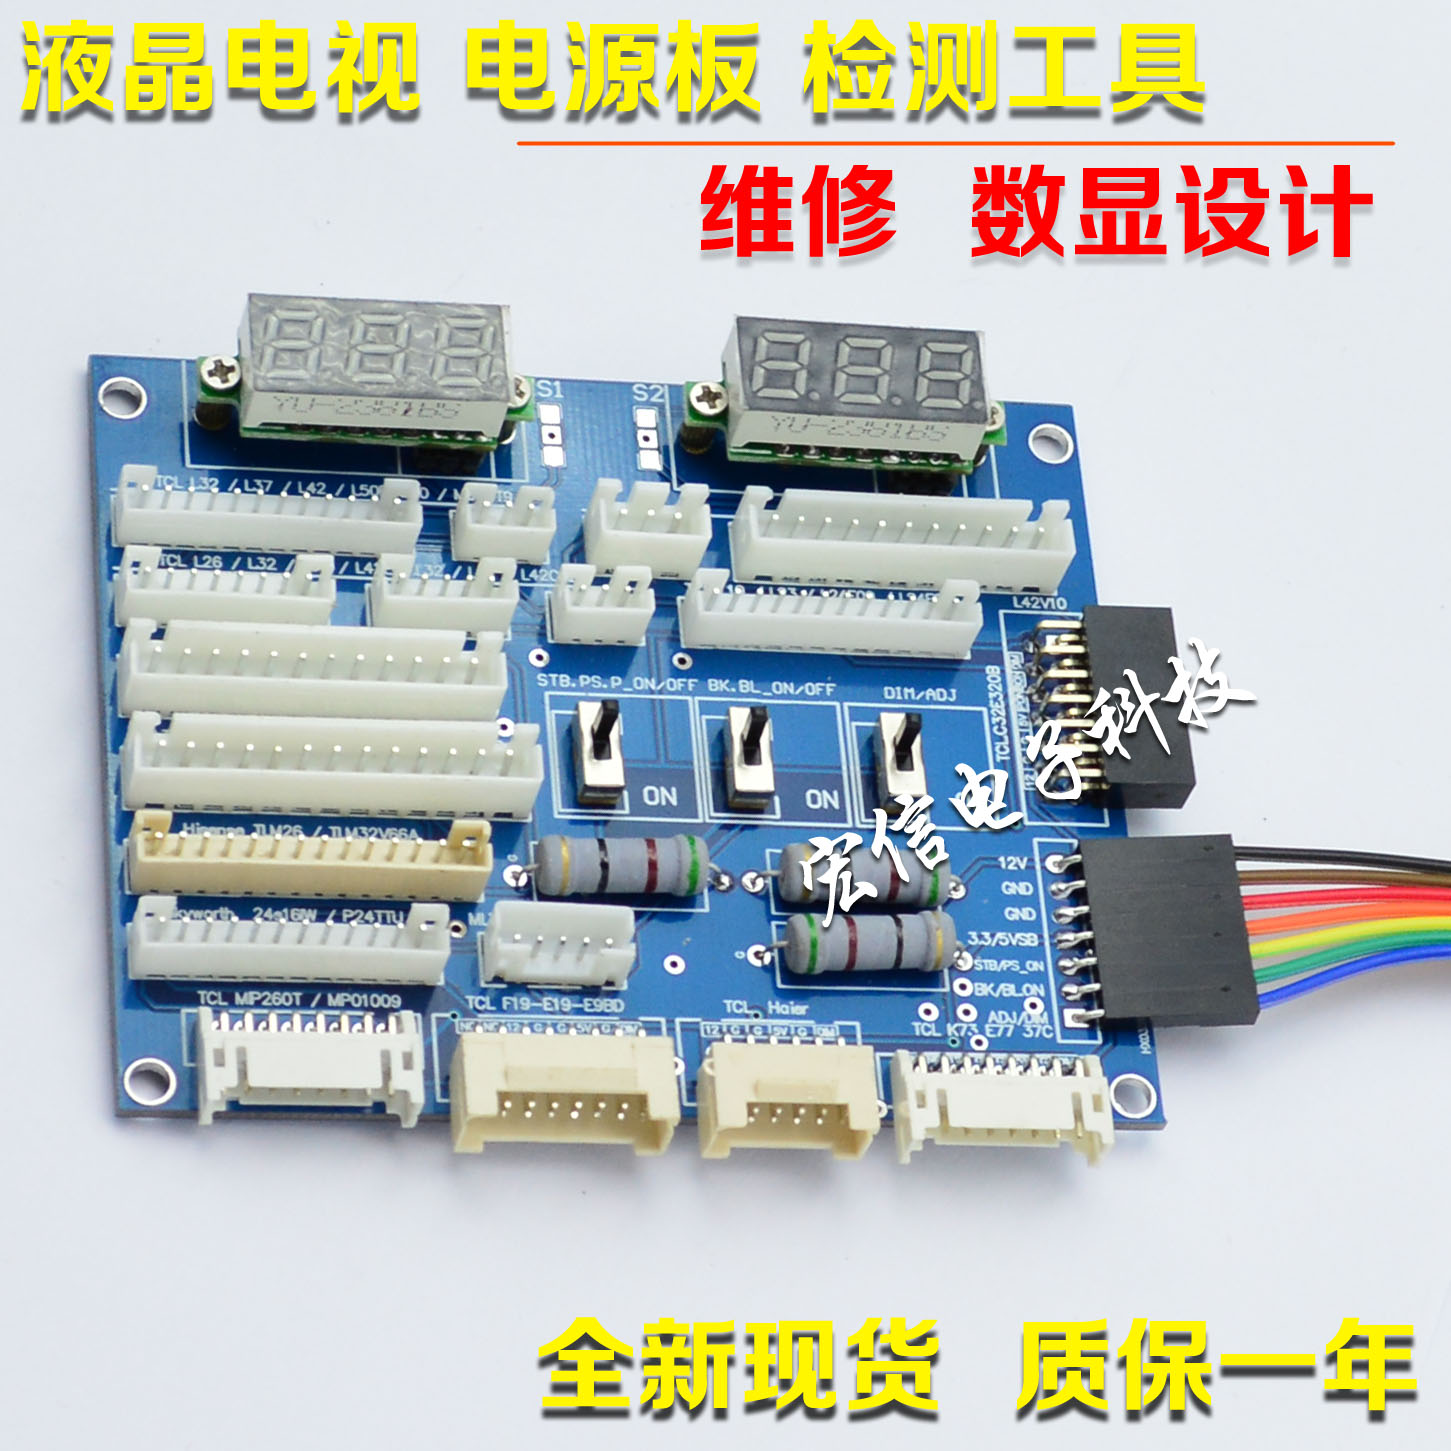 New Lcd Tv Power Board Detection Tool Test Inspection Circuit Maintenance Tooling Digital Display